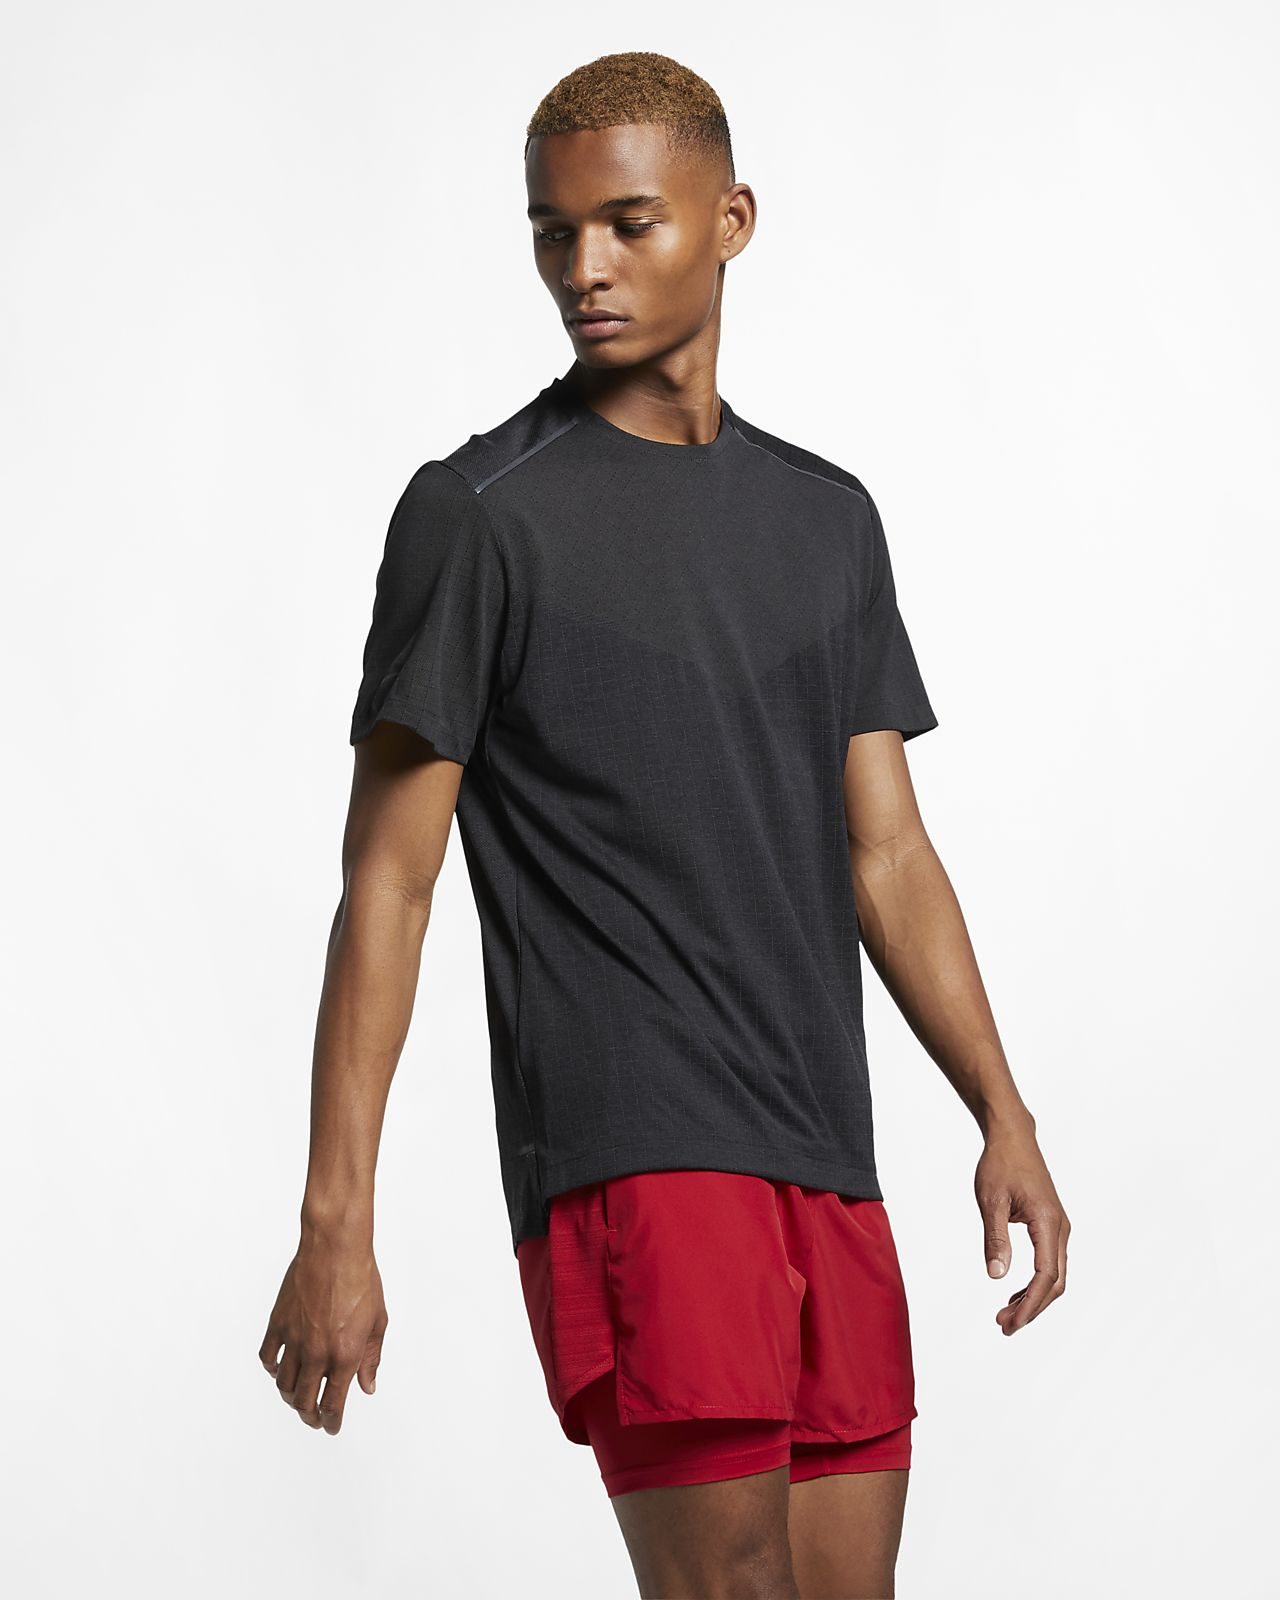 Nike Men's Short-Sleeve Running Top